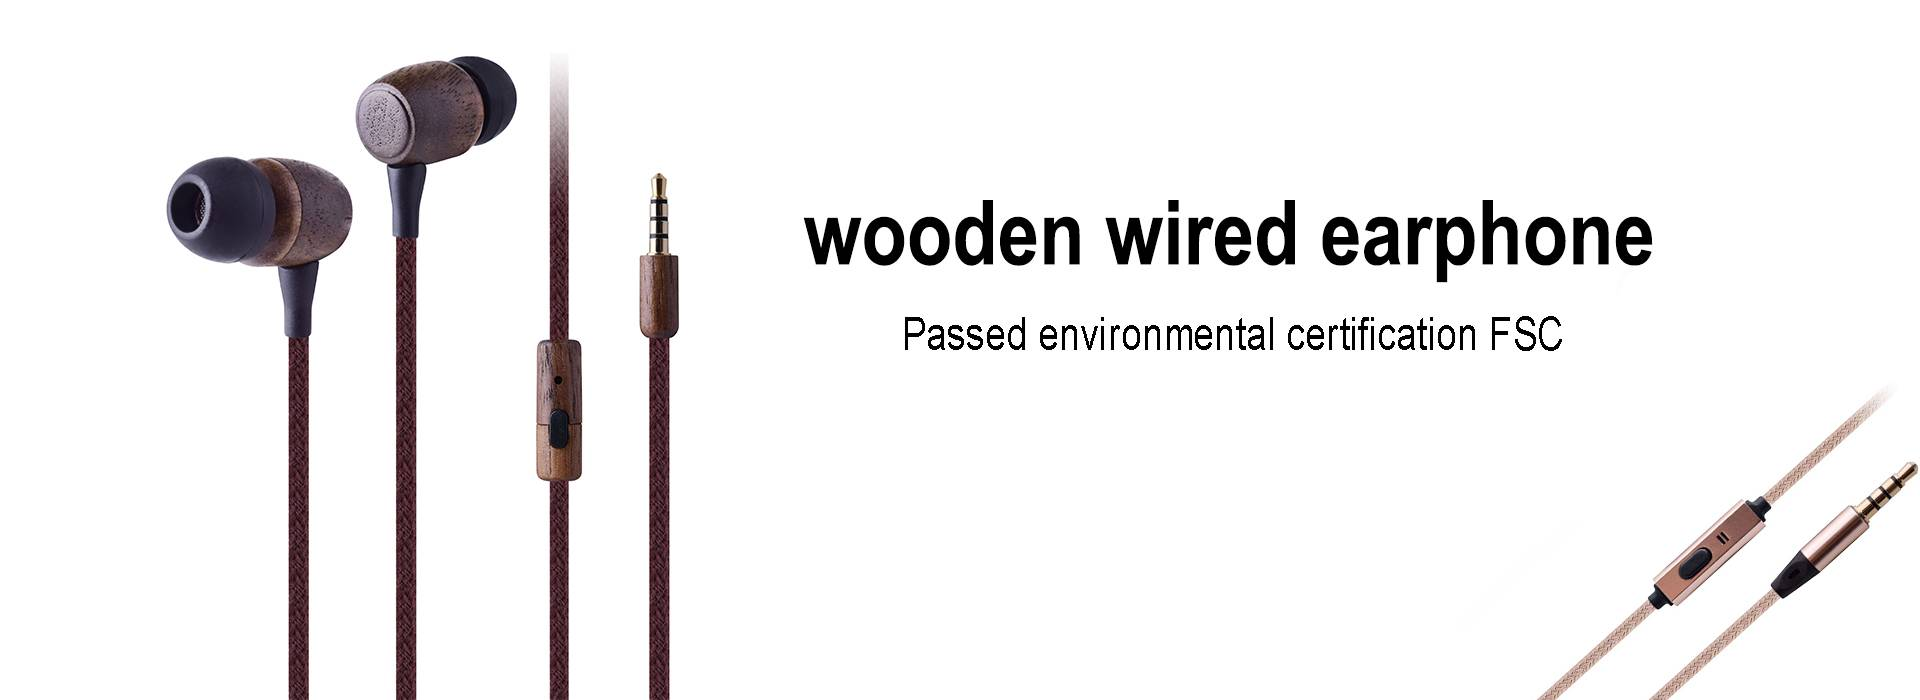 wooden wired earphone